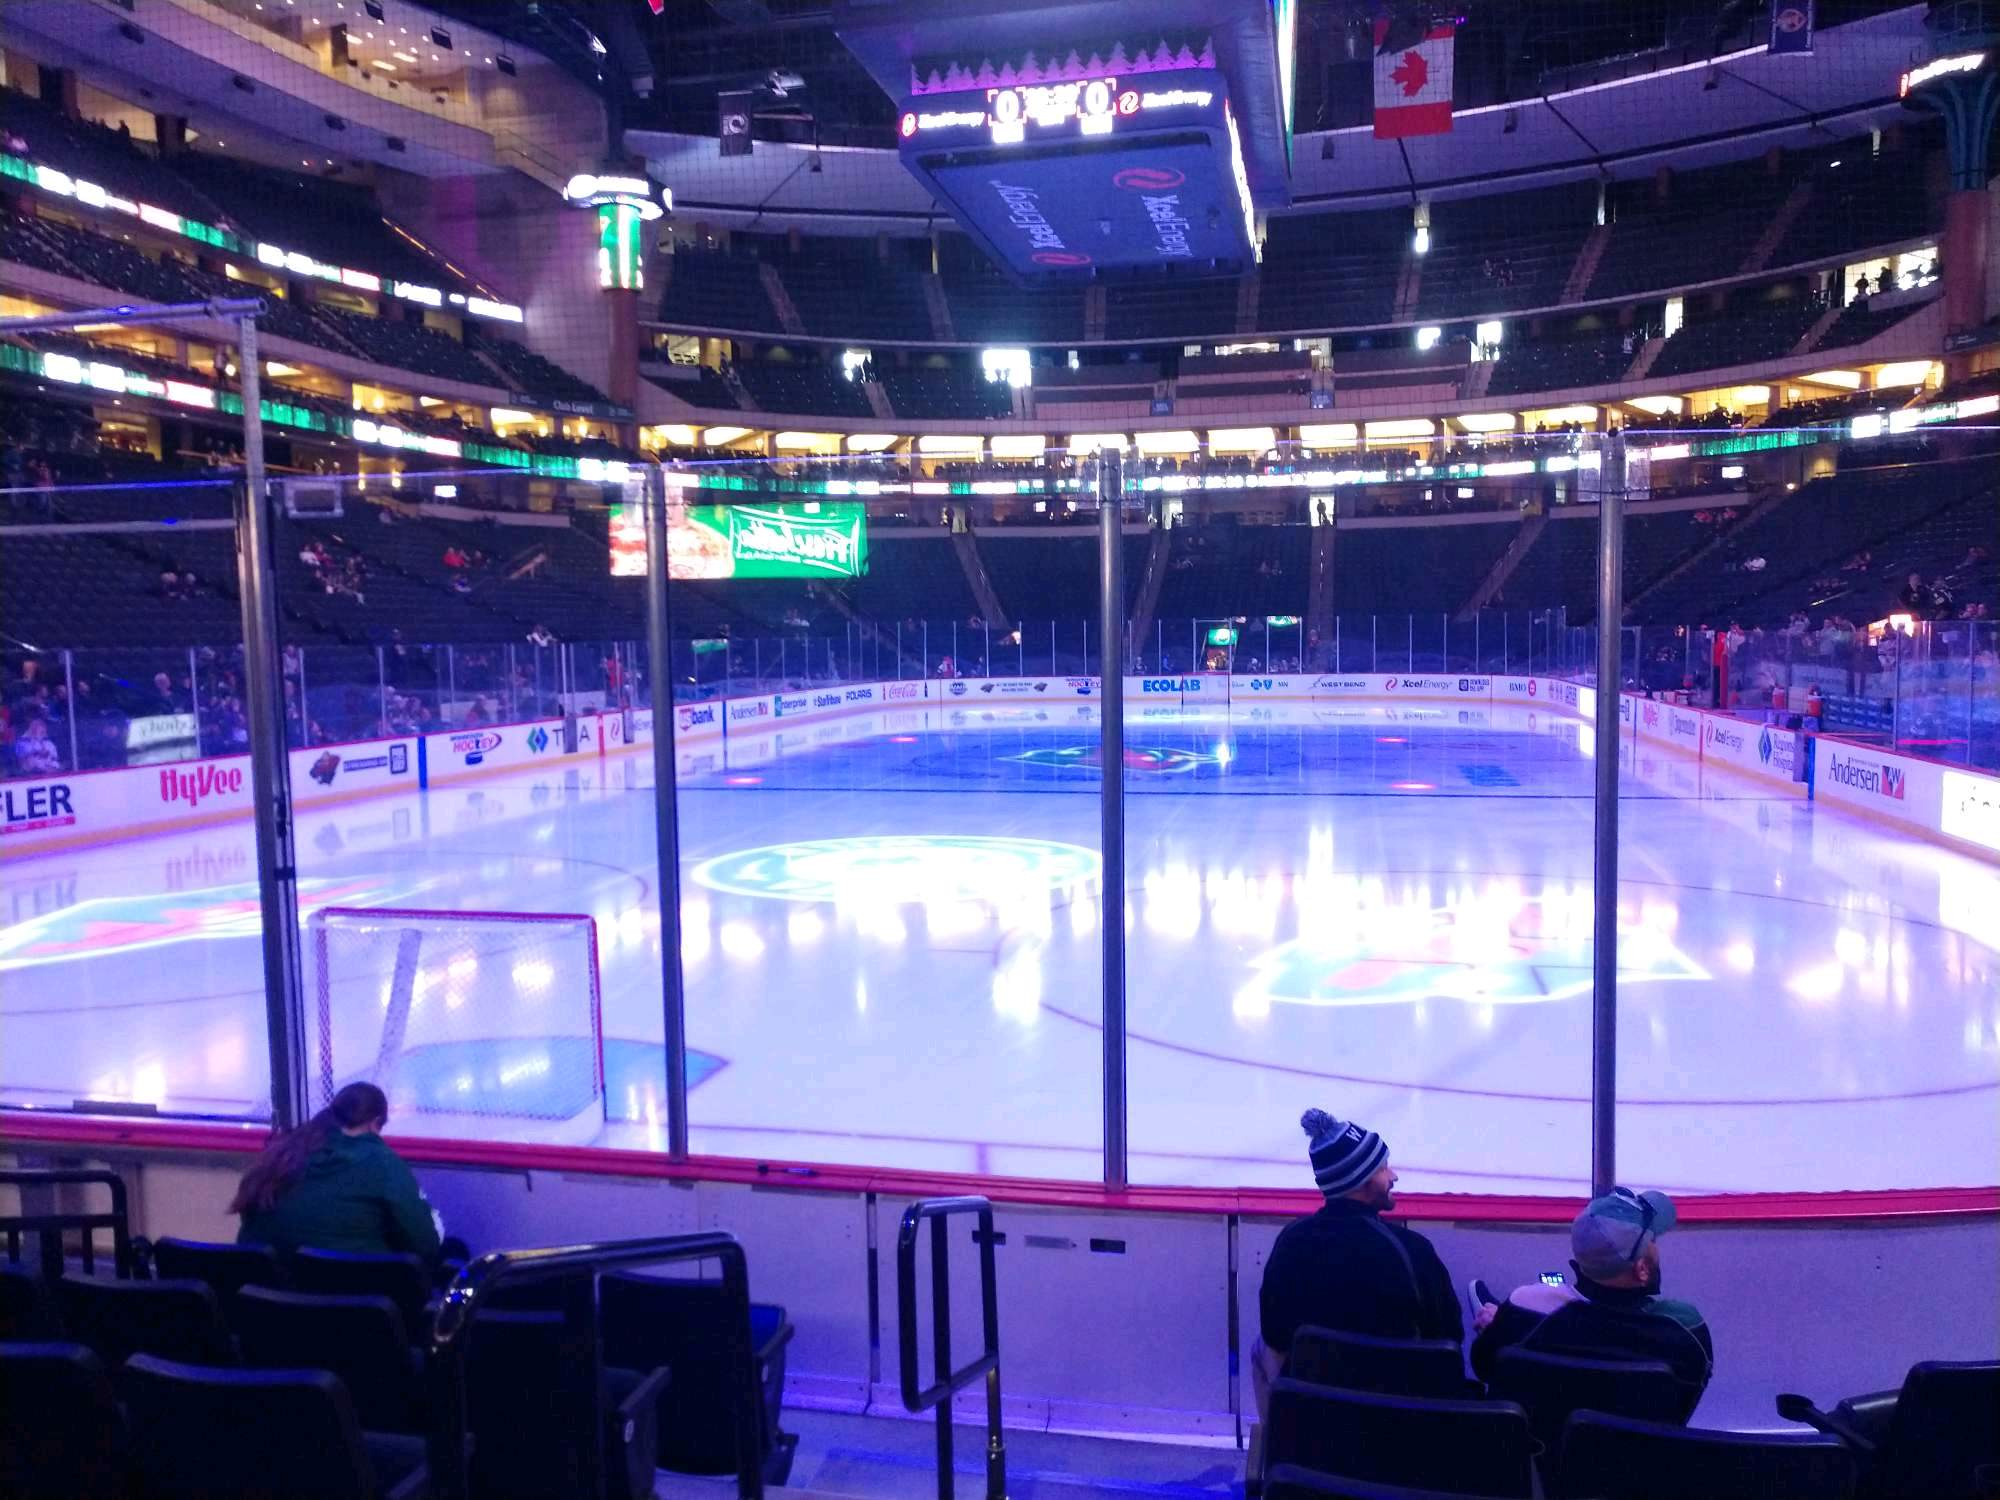 Xcel Energy Center Section 122 Row 6 Seat 8